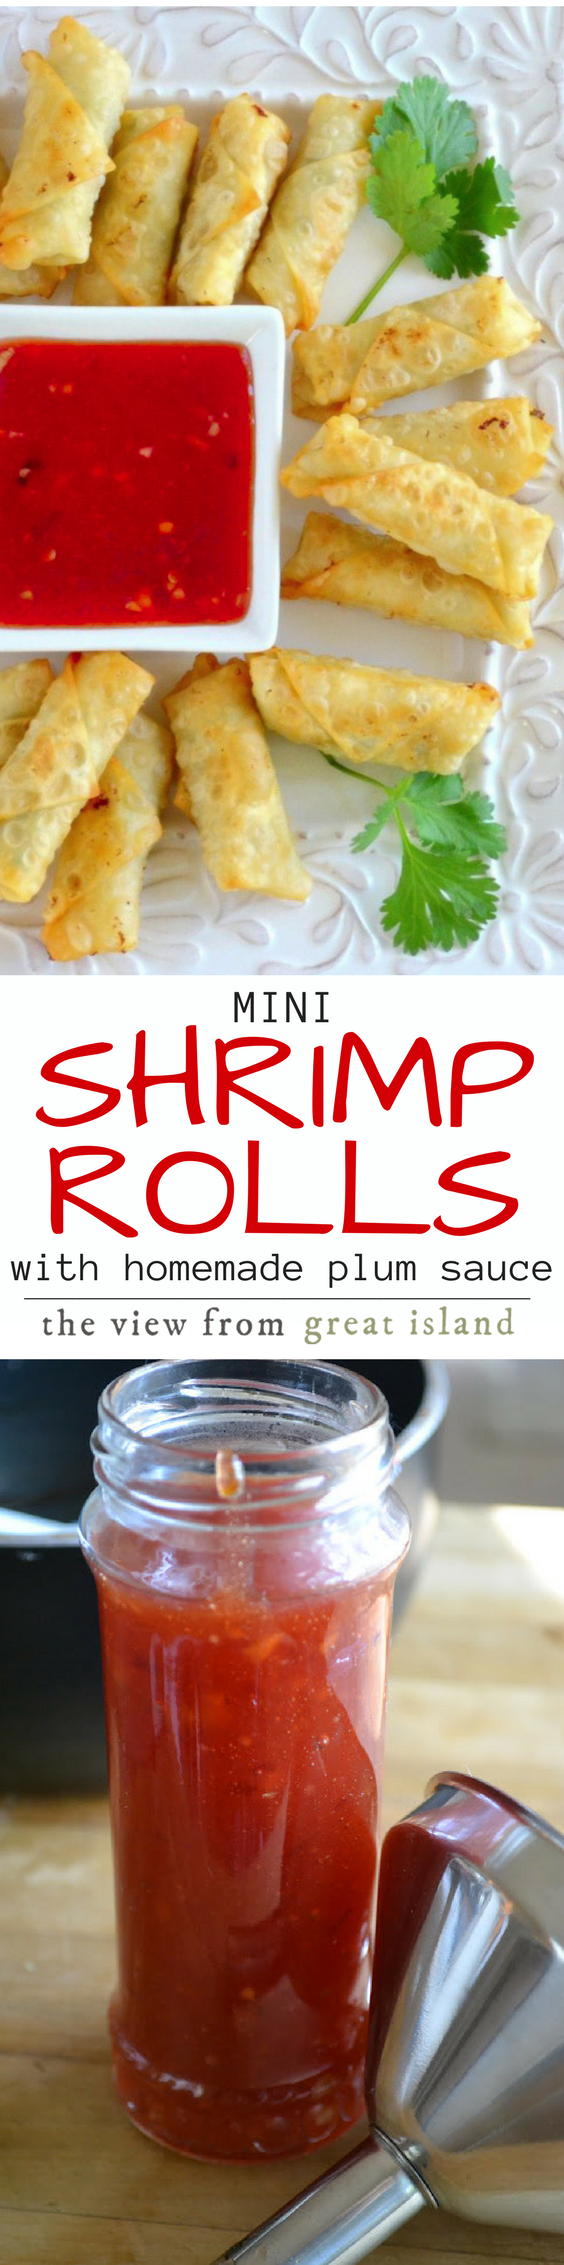 Mini Shrimp Rolls with Homemade Plum Sauce ~ these impossibly crisp little rolls are filled with tender shrimp, fresh ginger, and spring onion, and then served with an equally amazing tangy plum sauce ~ yum! #appetizer #asian #shrimp #shrimprolls #chilisauce #hotappetizer #fingerfood #shrimpappetizer #chinese